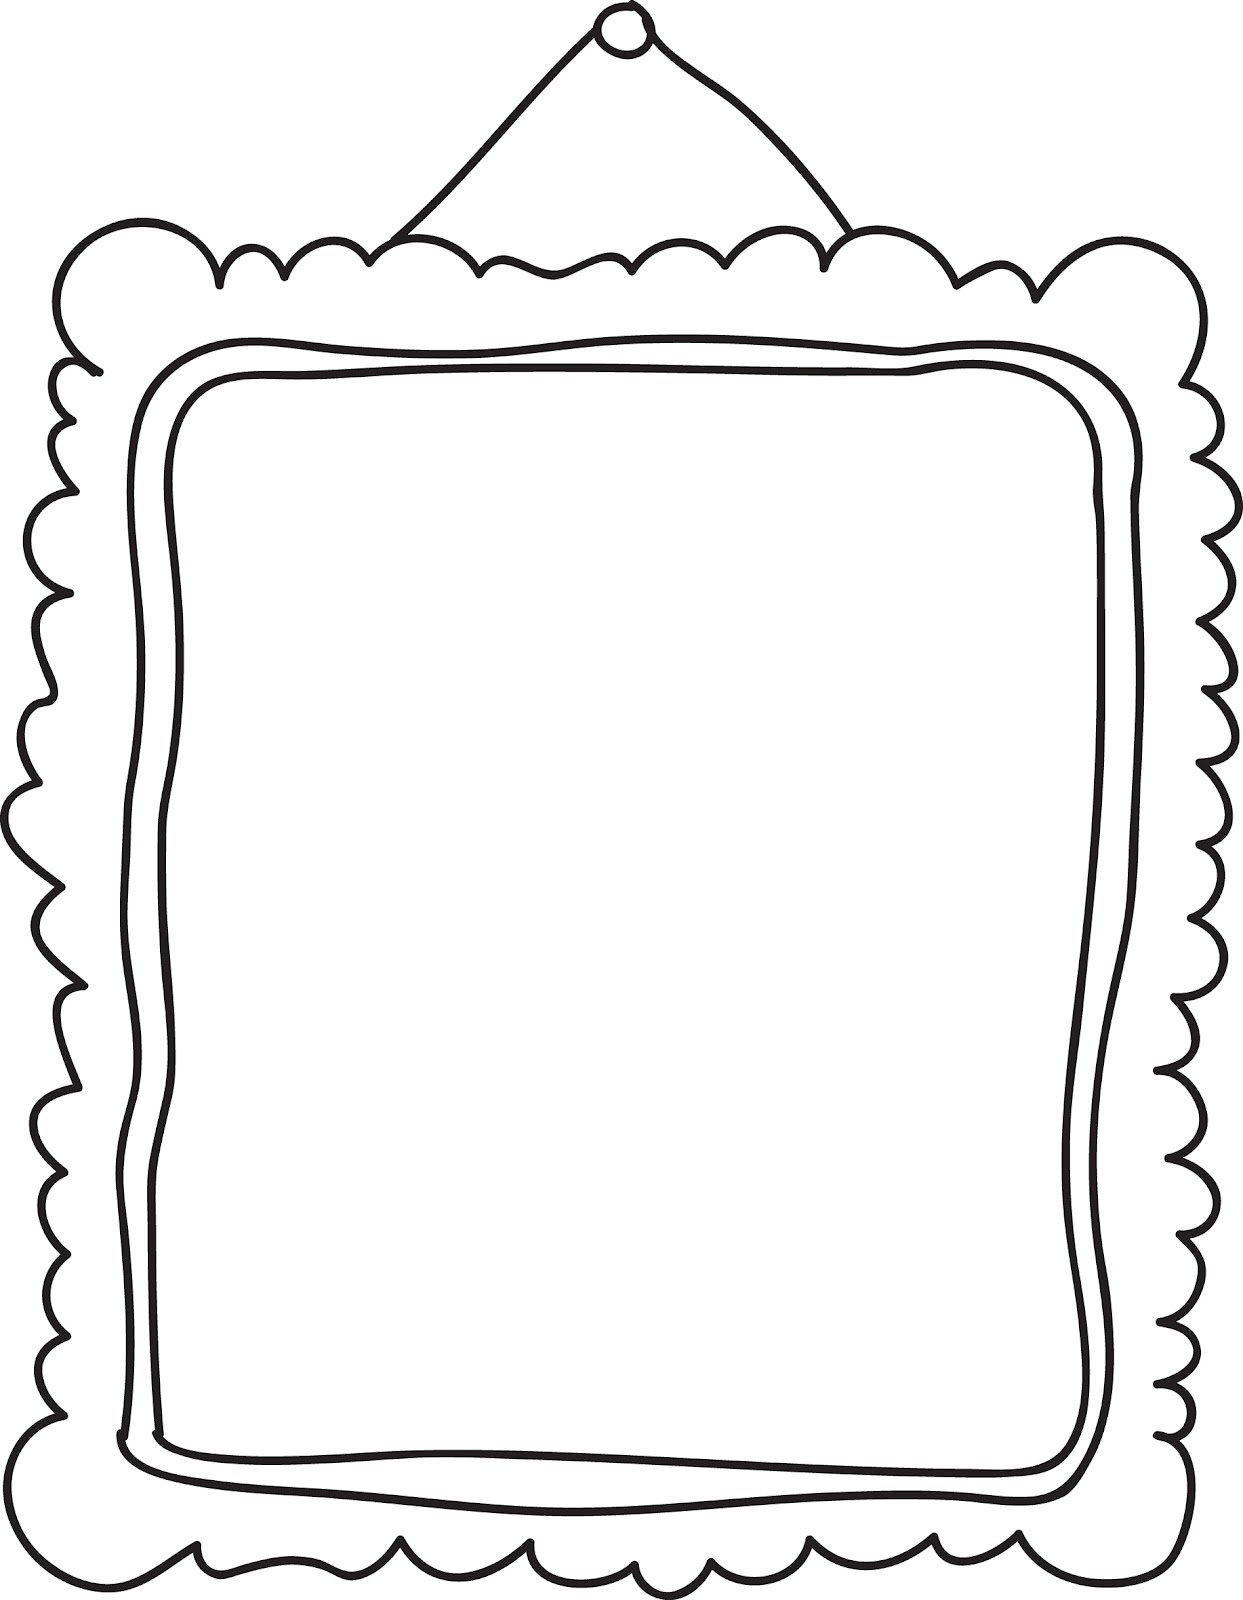 Free Frames Clipart-Free Frames Clipart-1